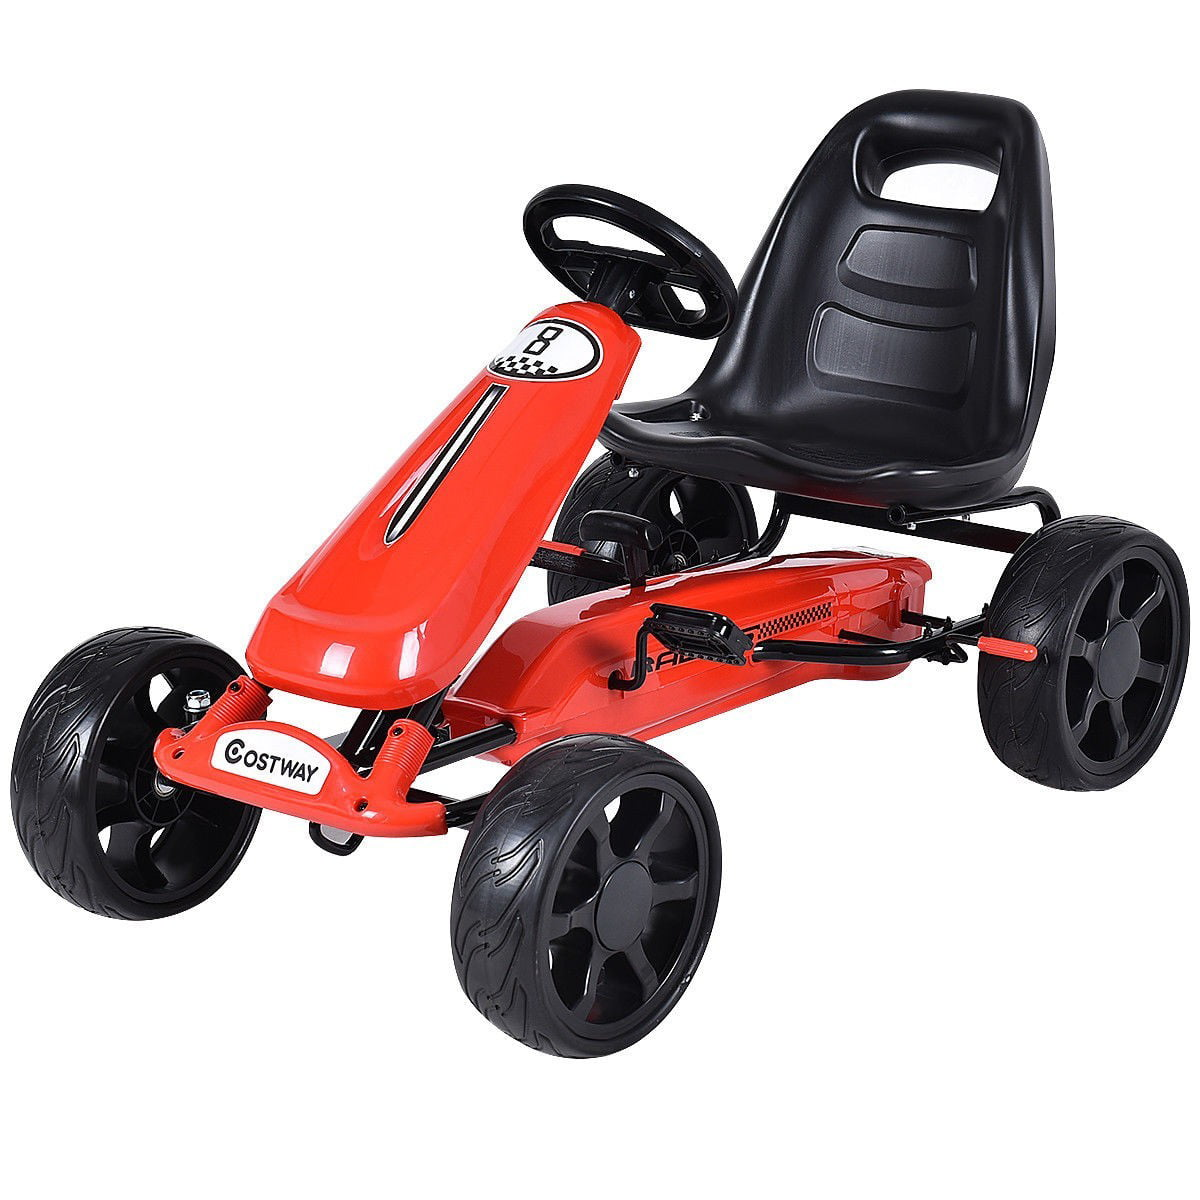 Outdoor Kids 4 Wheel Pedal Powered Riding Kart Car Red by